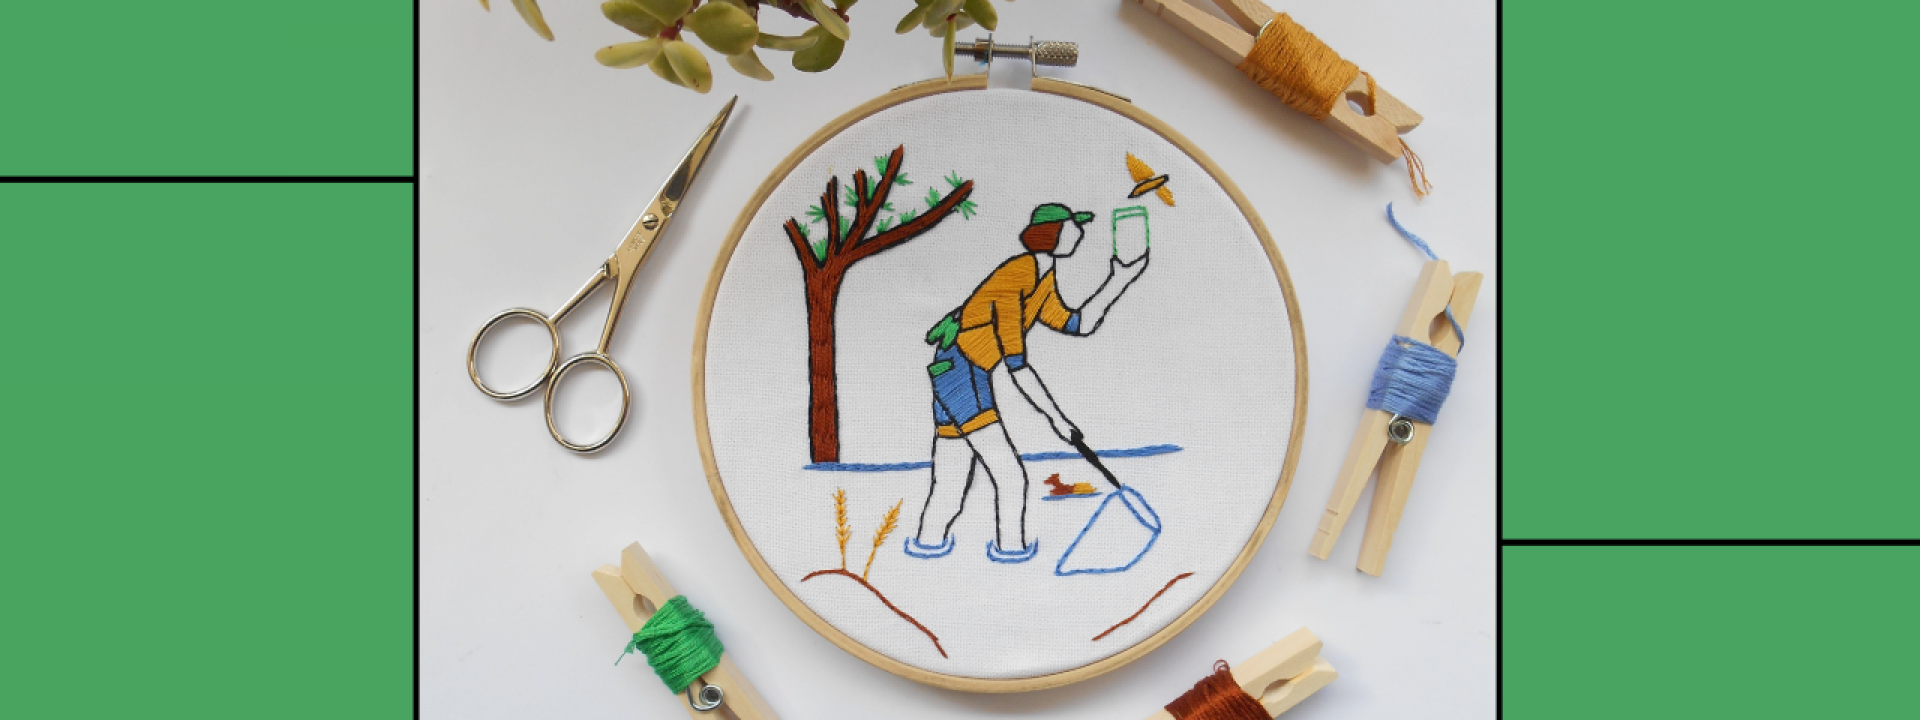 Creative Embroidery: Eminent personalities - April - Εικόνα